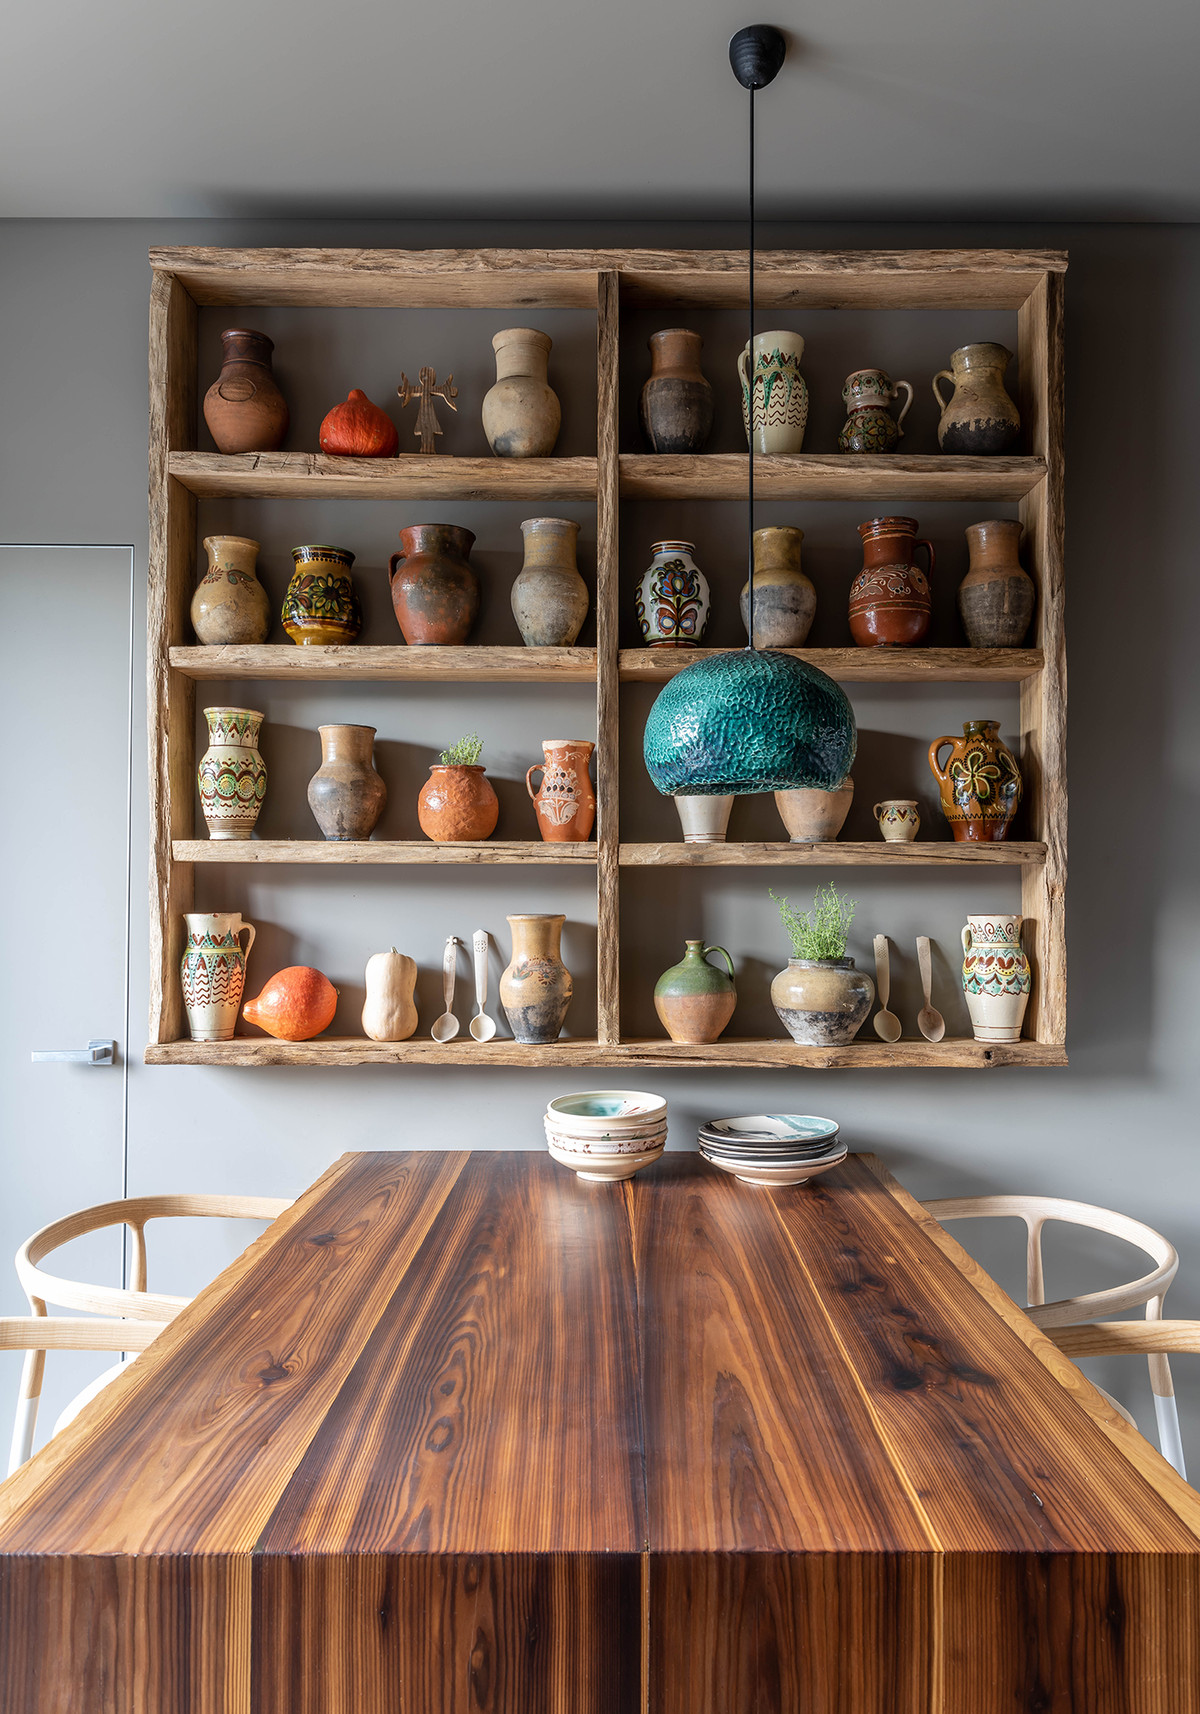 Dining table next to ceramics mounted on shelf.